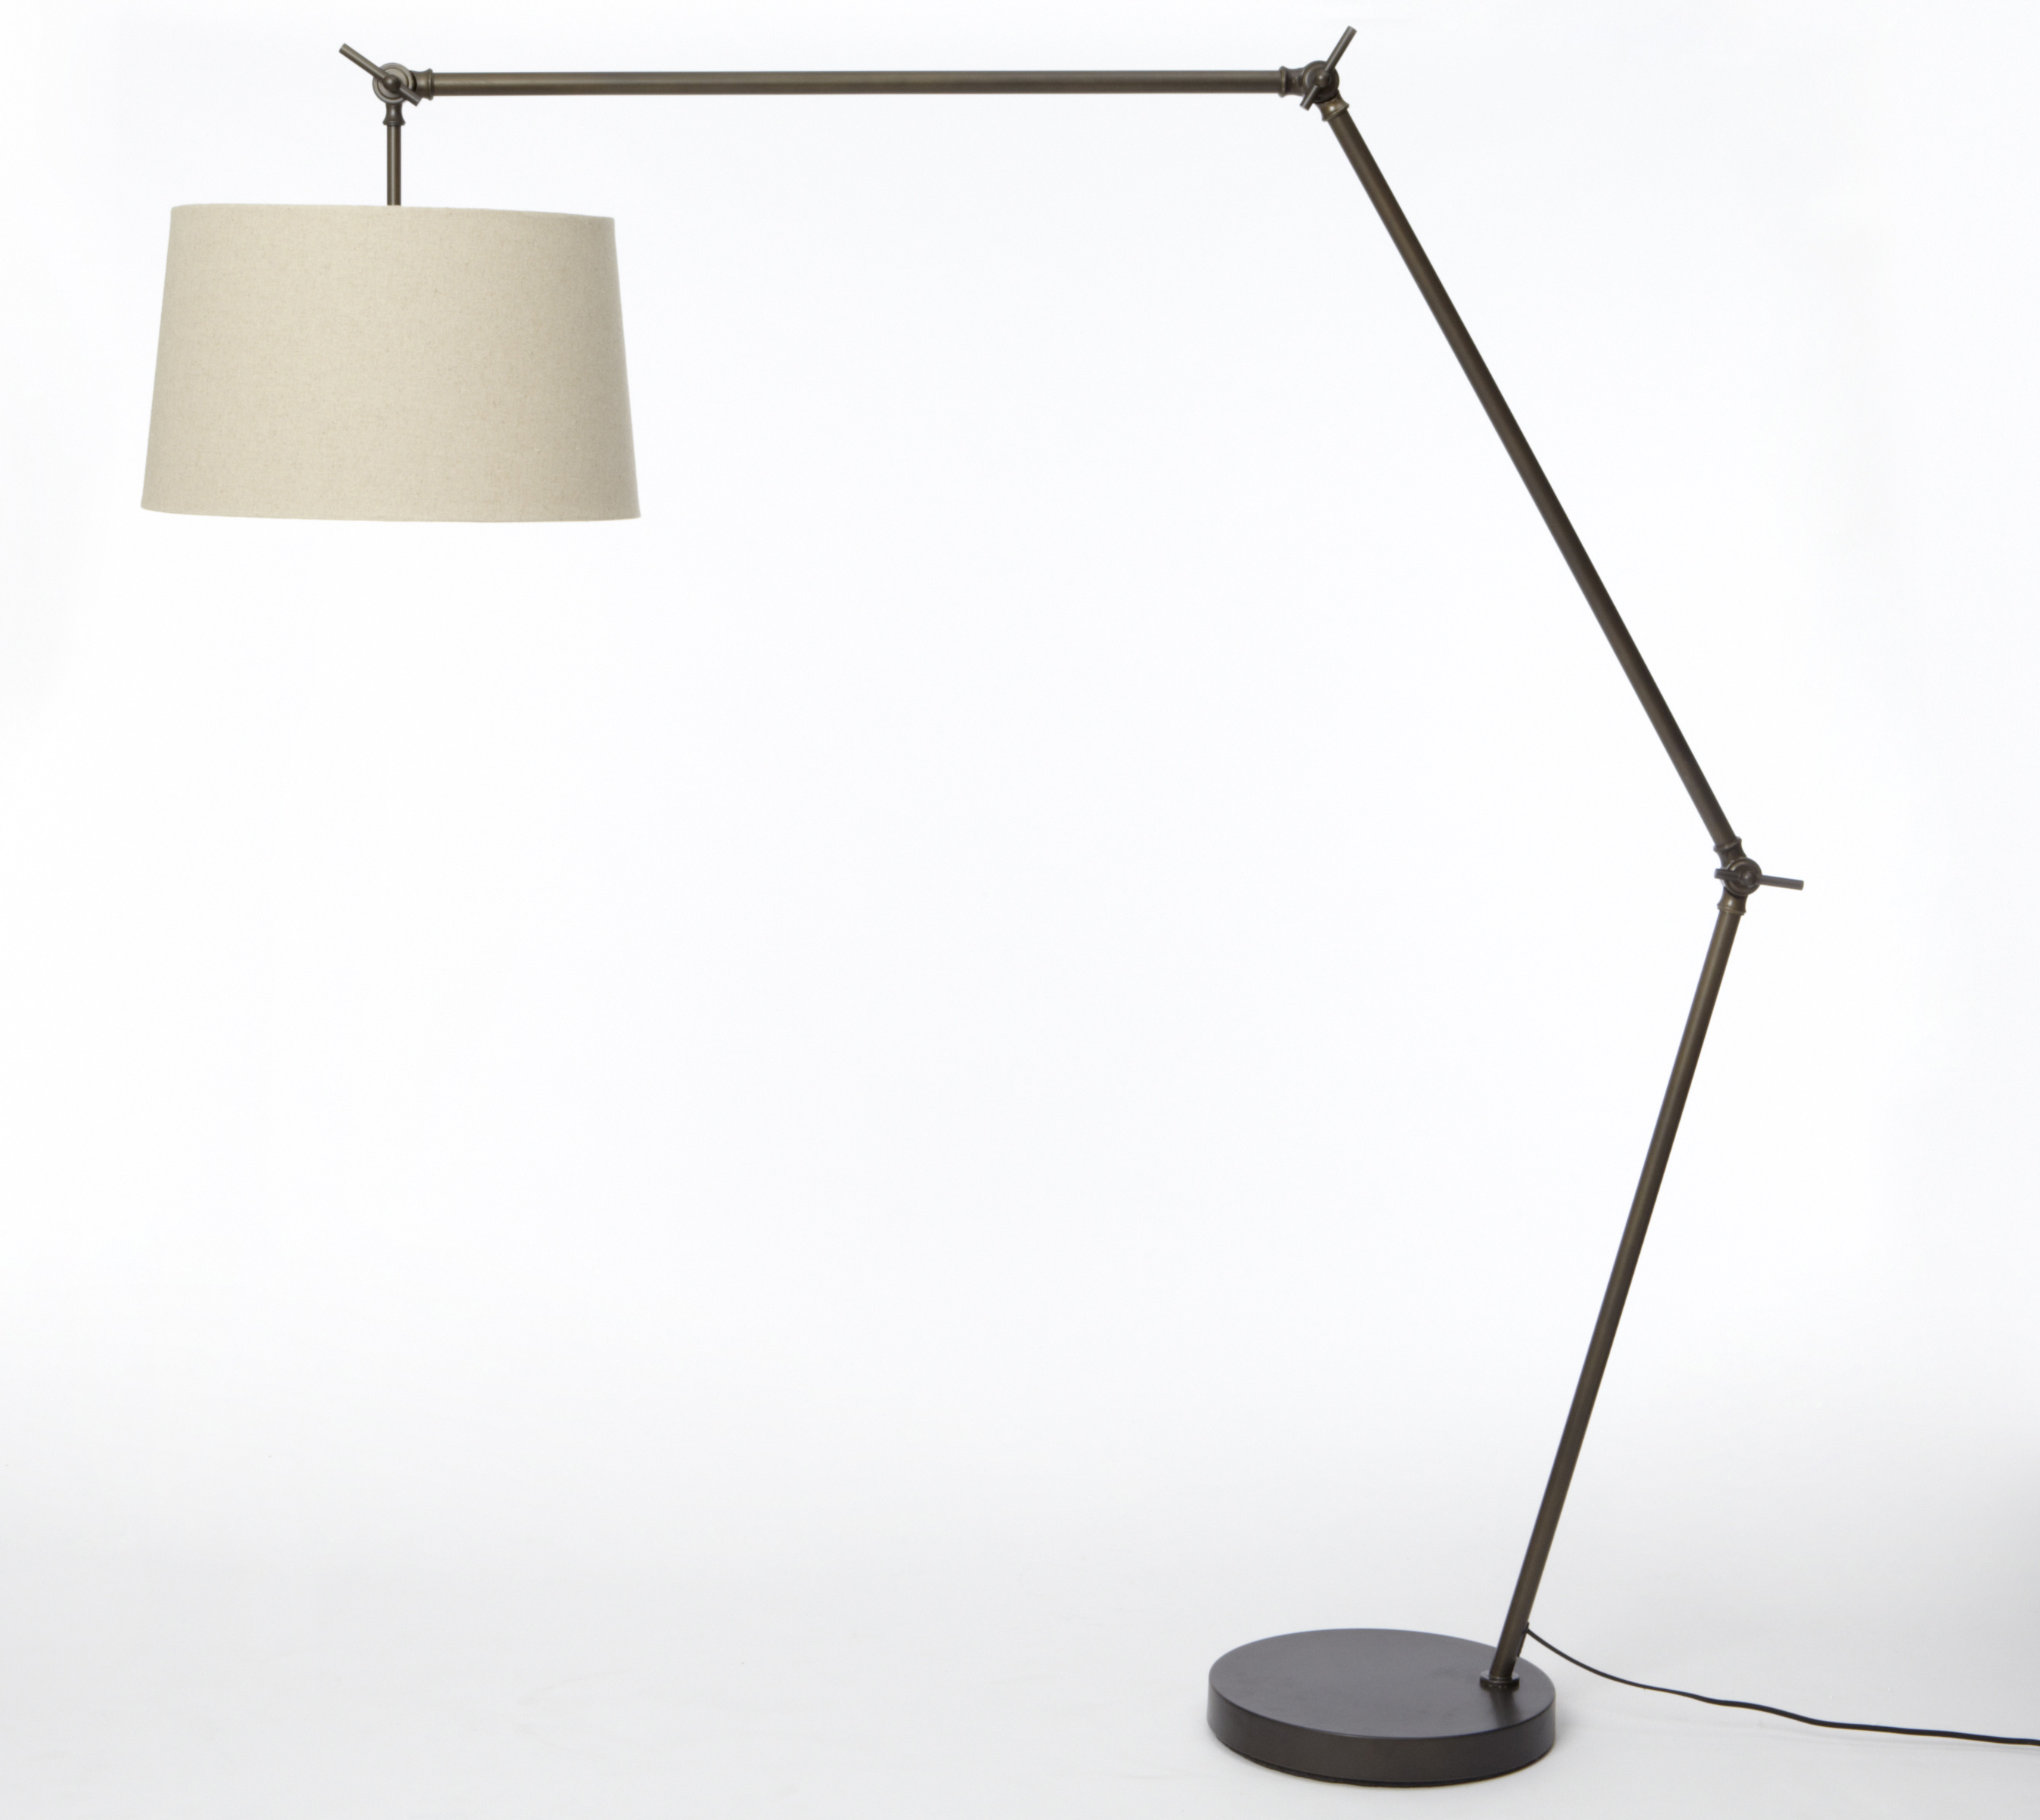 West Elm Recalls Floor Lamps Due to Injury and Shock Hazards